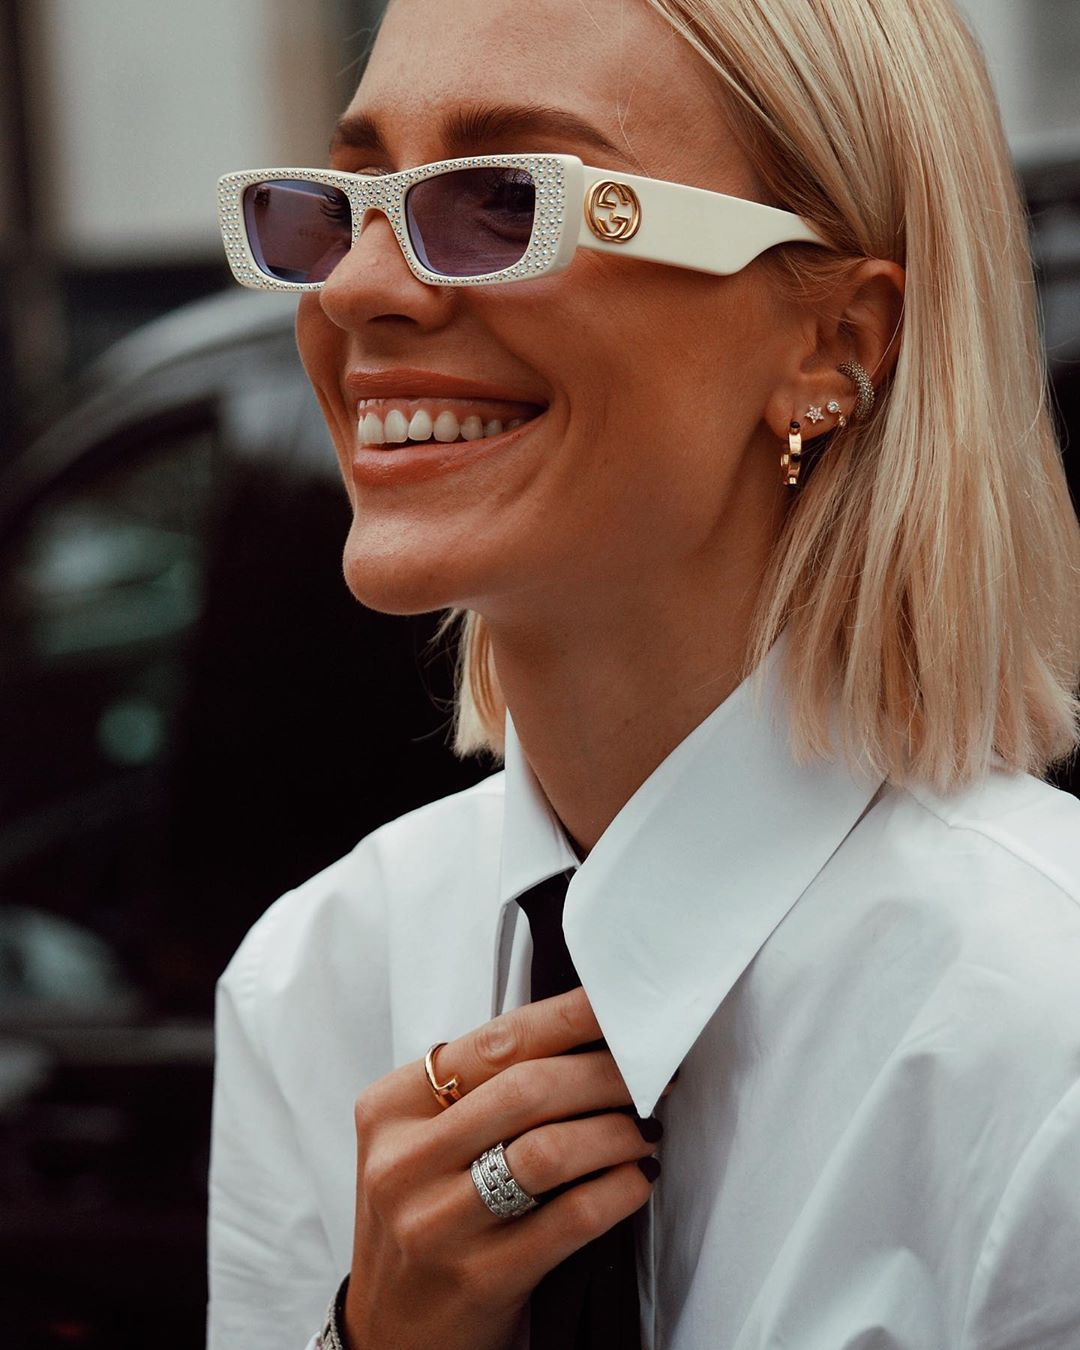 viktoria-rader-gucci-ivory-acetate-rectangular-sunglasses-with-crystals-instagram